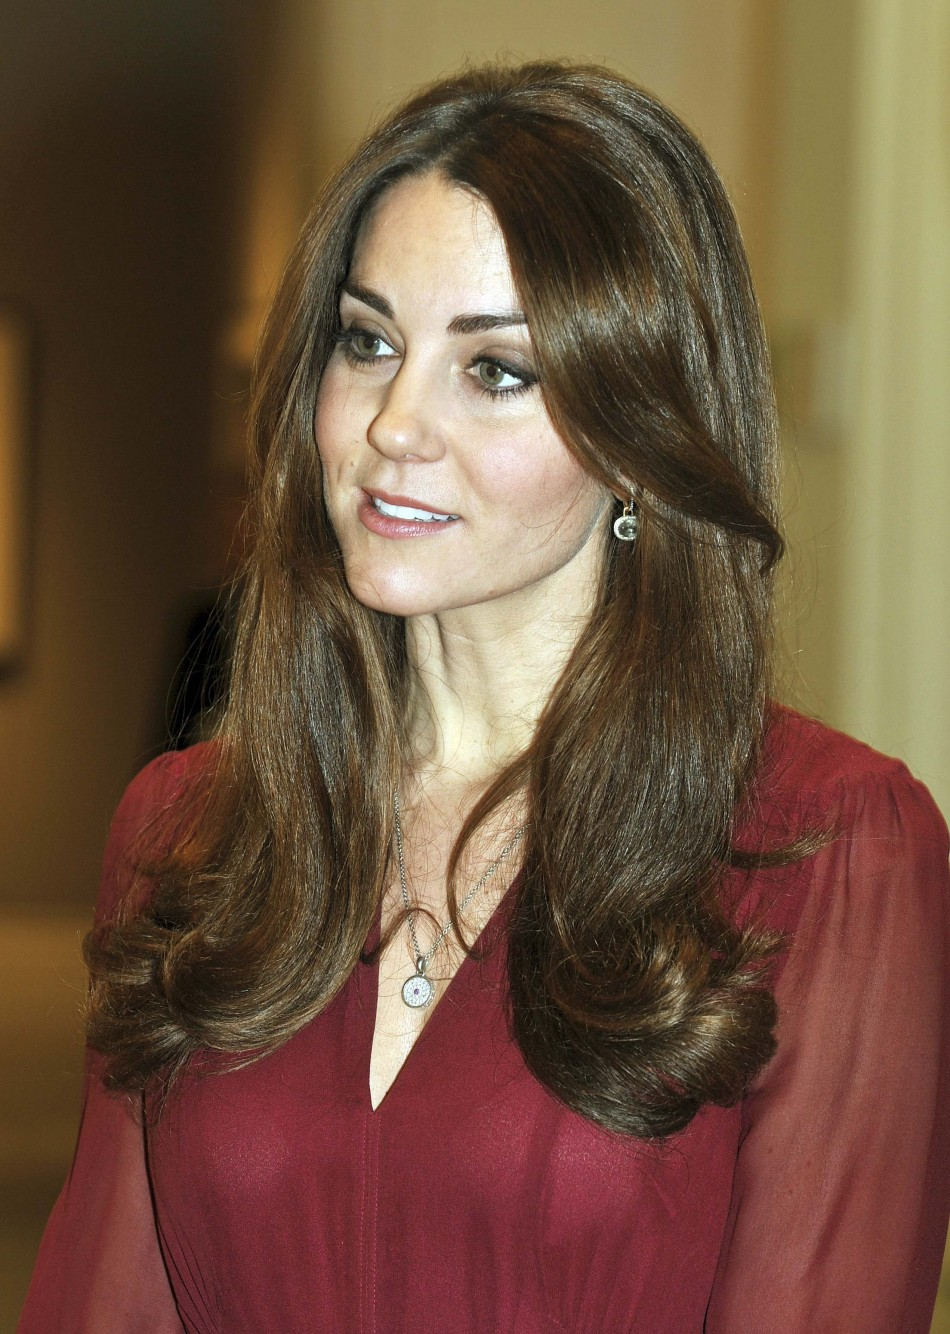 the dutches of cambridge So what is the public attitude towards the duchess of cambridge what does she represent what is changing do women look up to her should they.